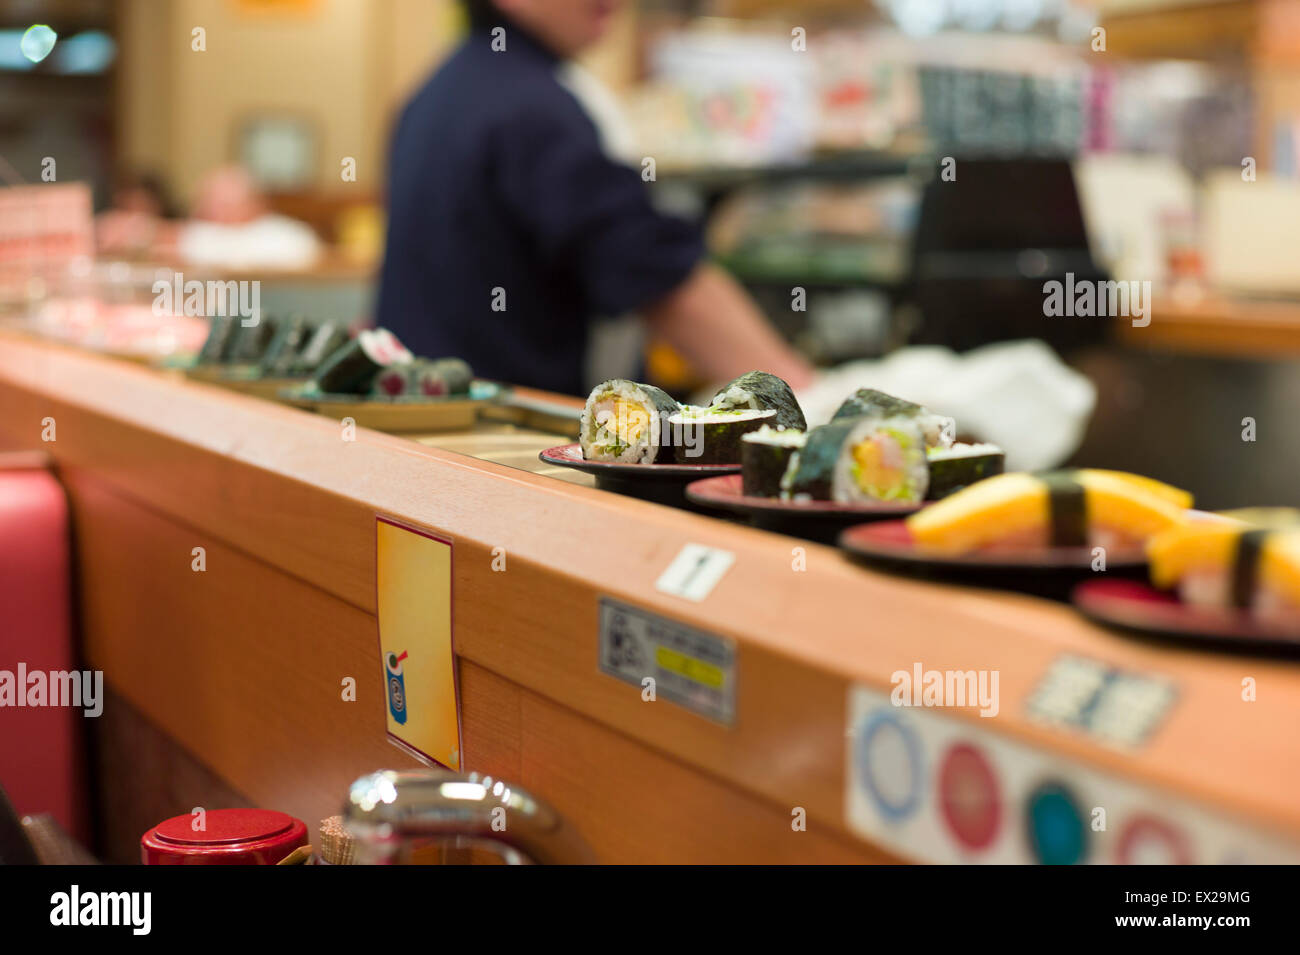 Rotation sushi at Japanese restaurant. - Stock Image